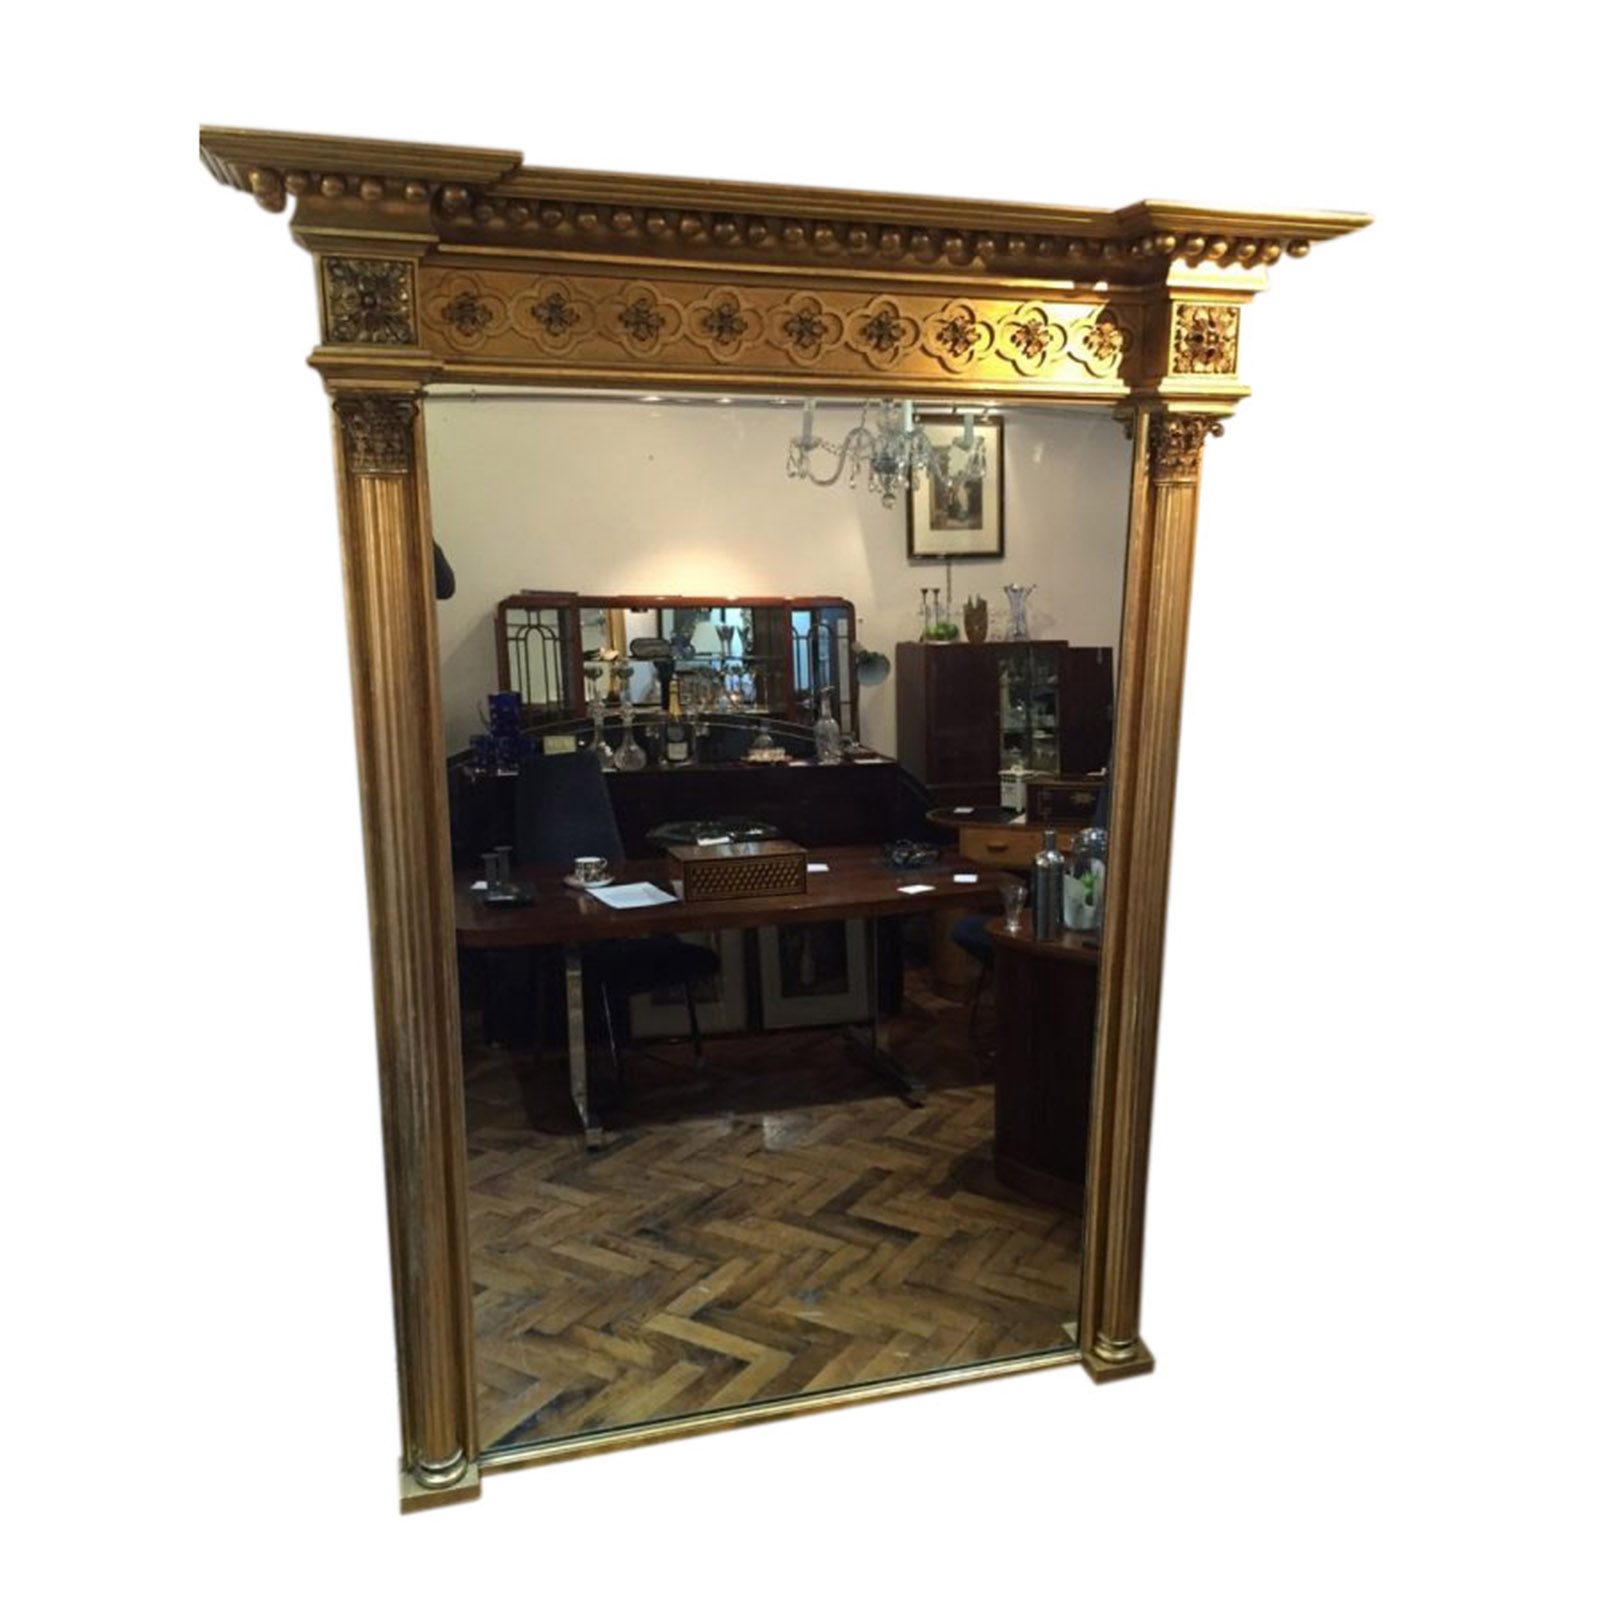 Exceptional Large Early 19th Carved Wood and Gesso Overmantle